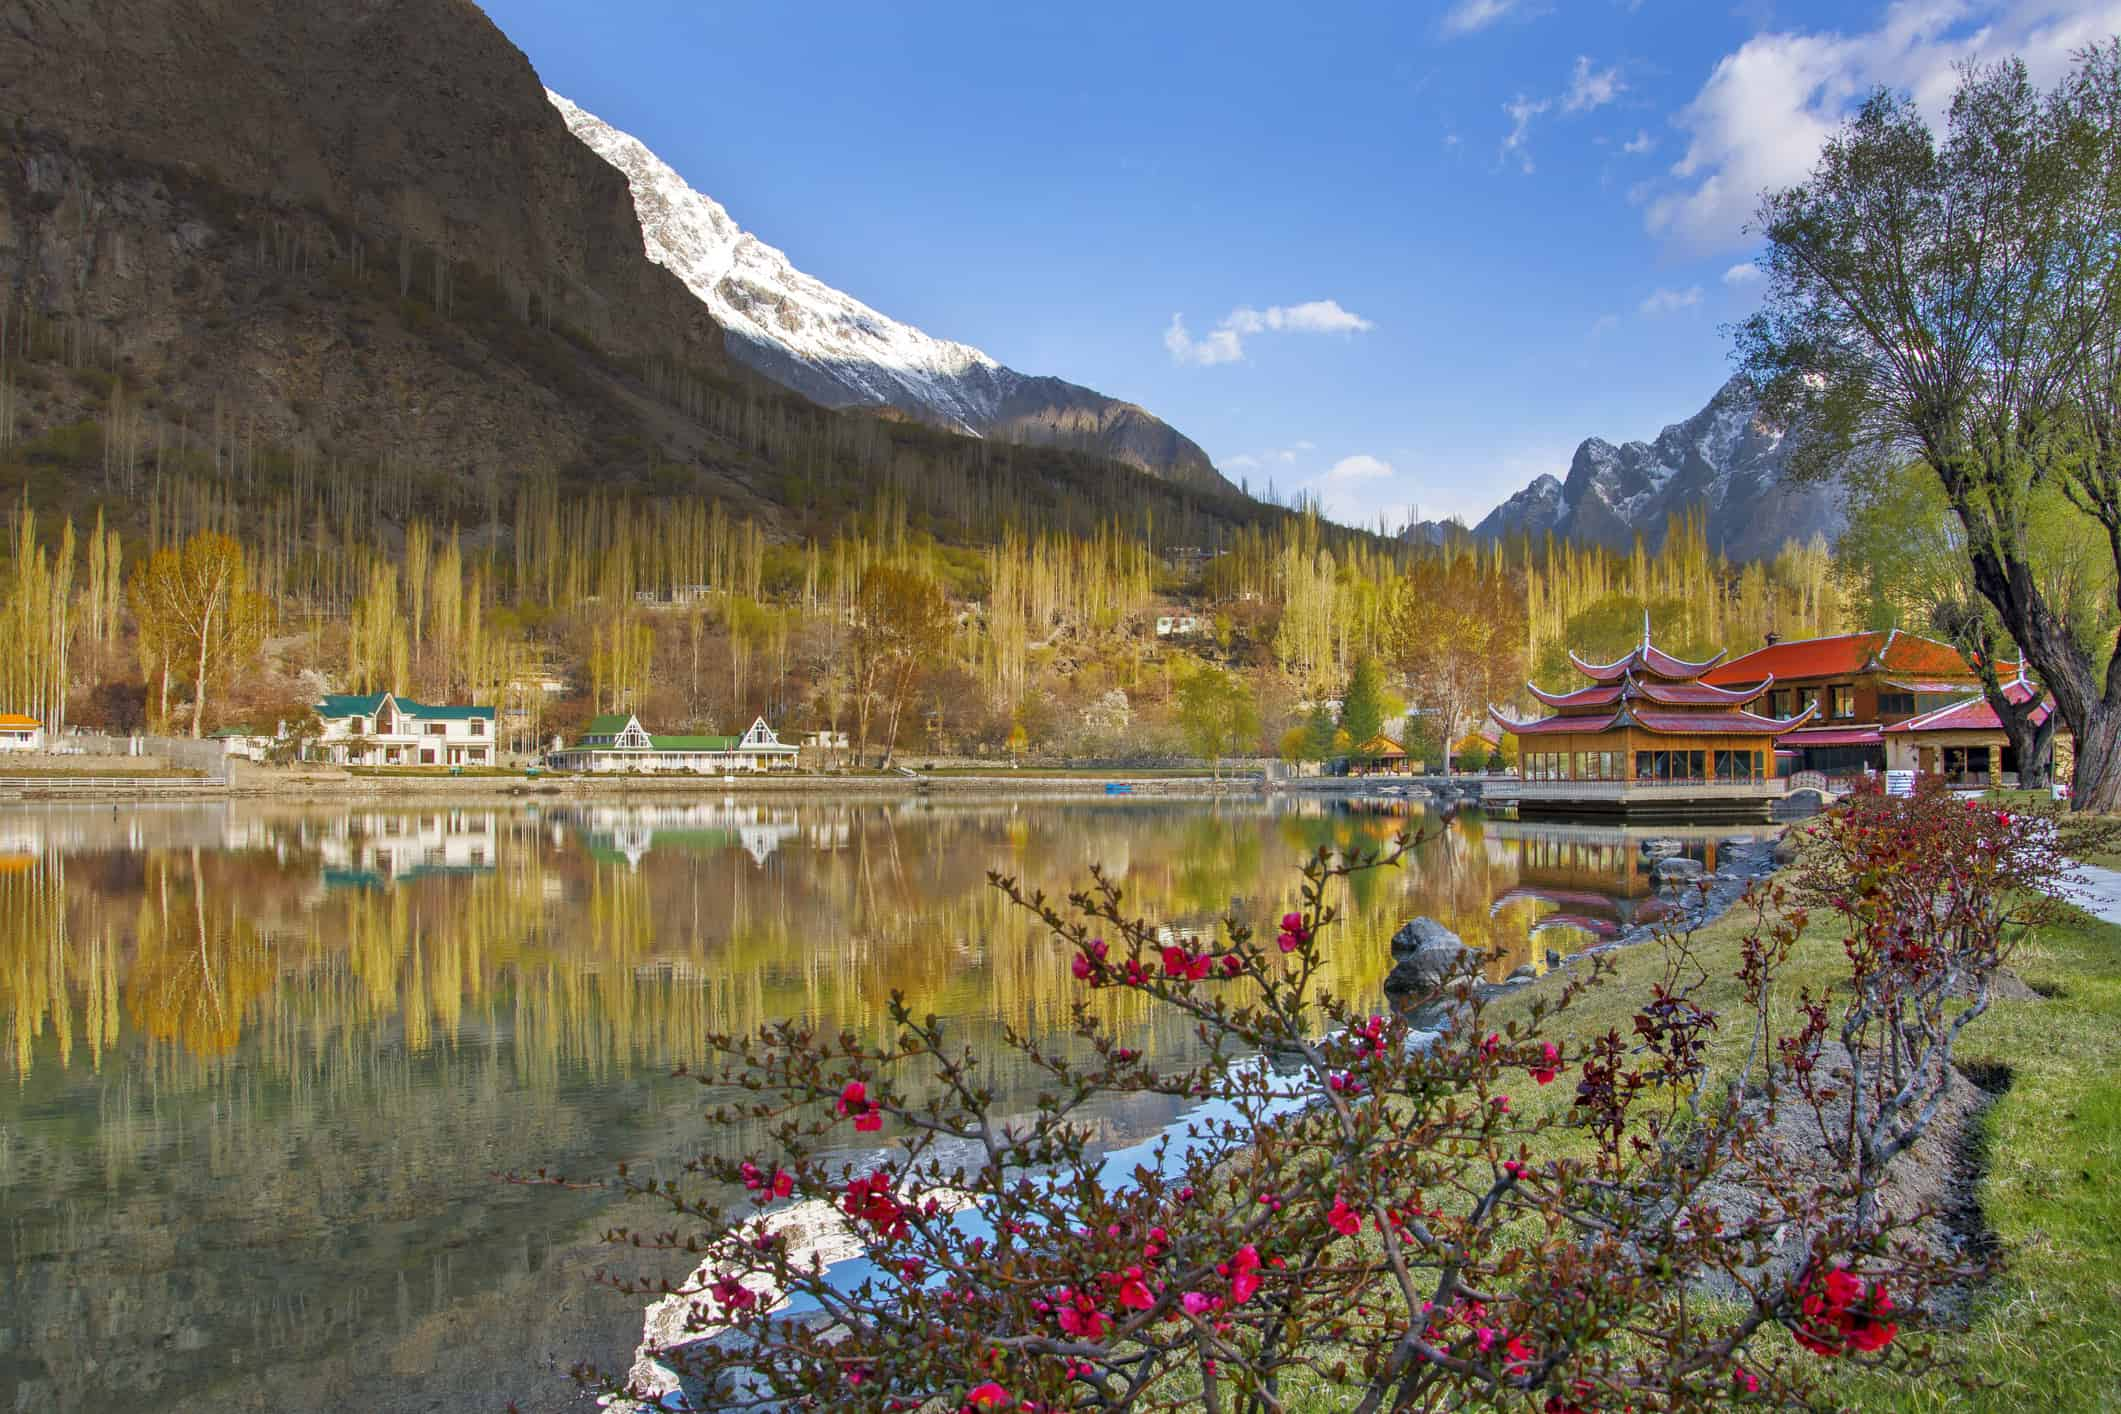 Lakeside Shangri-La Resort Skardu, Pakistan